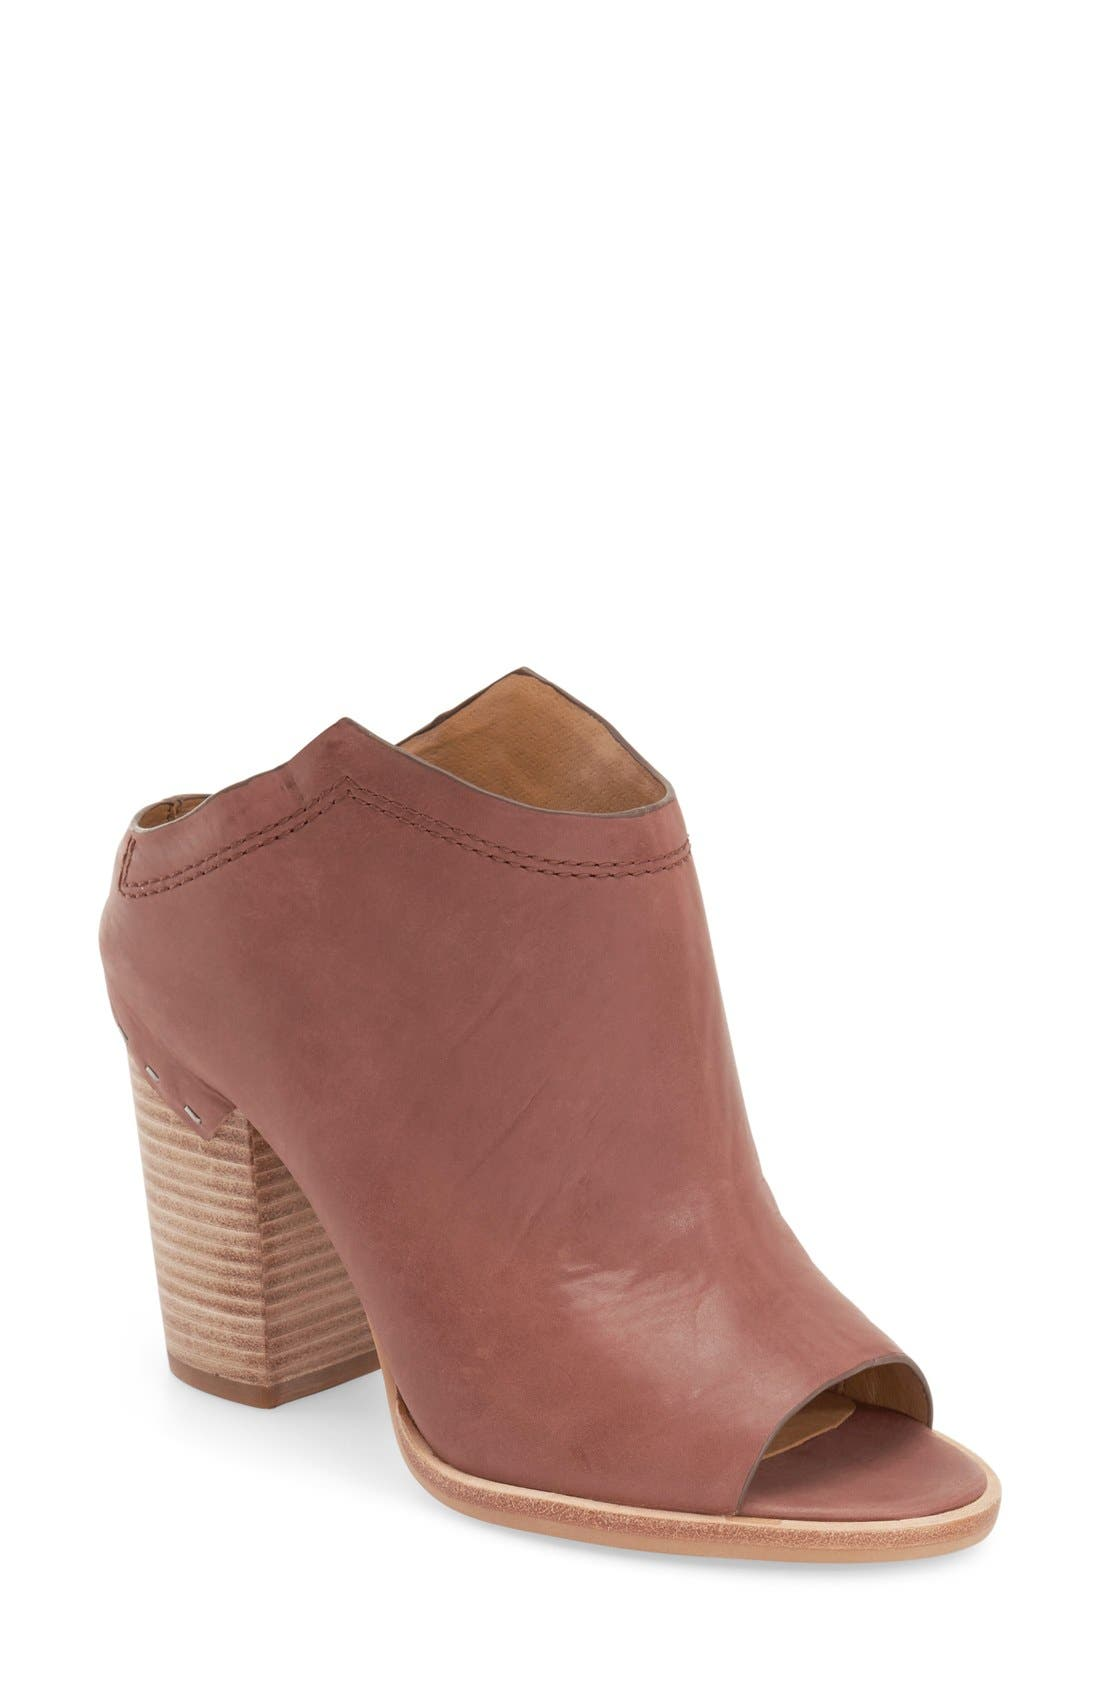 Alternate Image 1 Selected - Dolce Vita 'Noa' Bootie (Women)